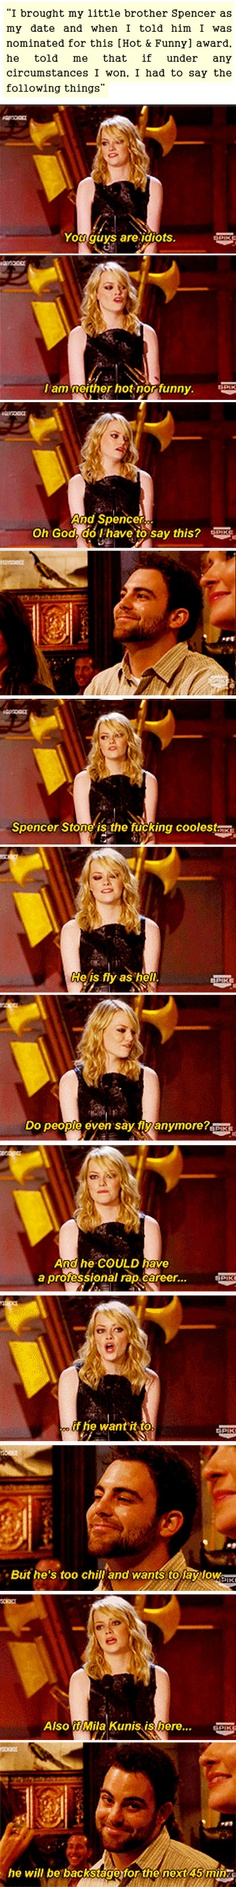 Spencer Stone, Emma Stone's brother, left Emma a speech that she had to read if she won the hot and funny award. The speech includes Mila Kunis